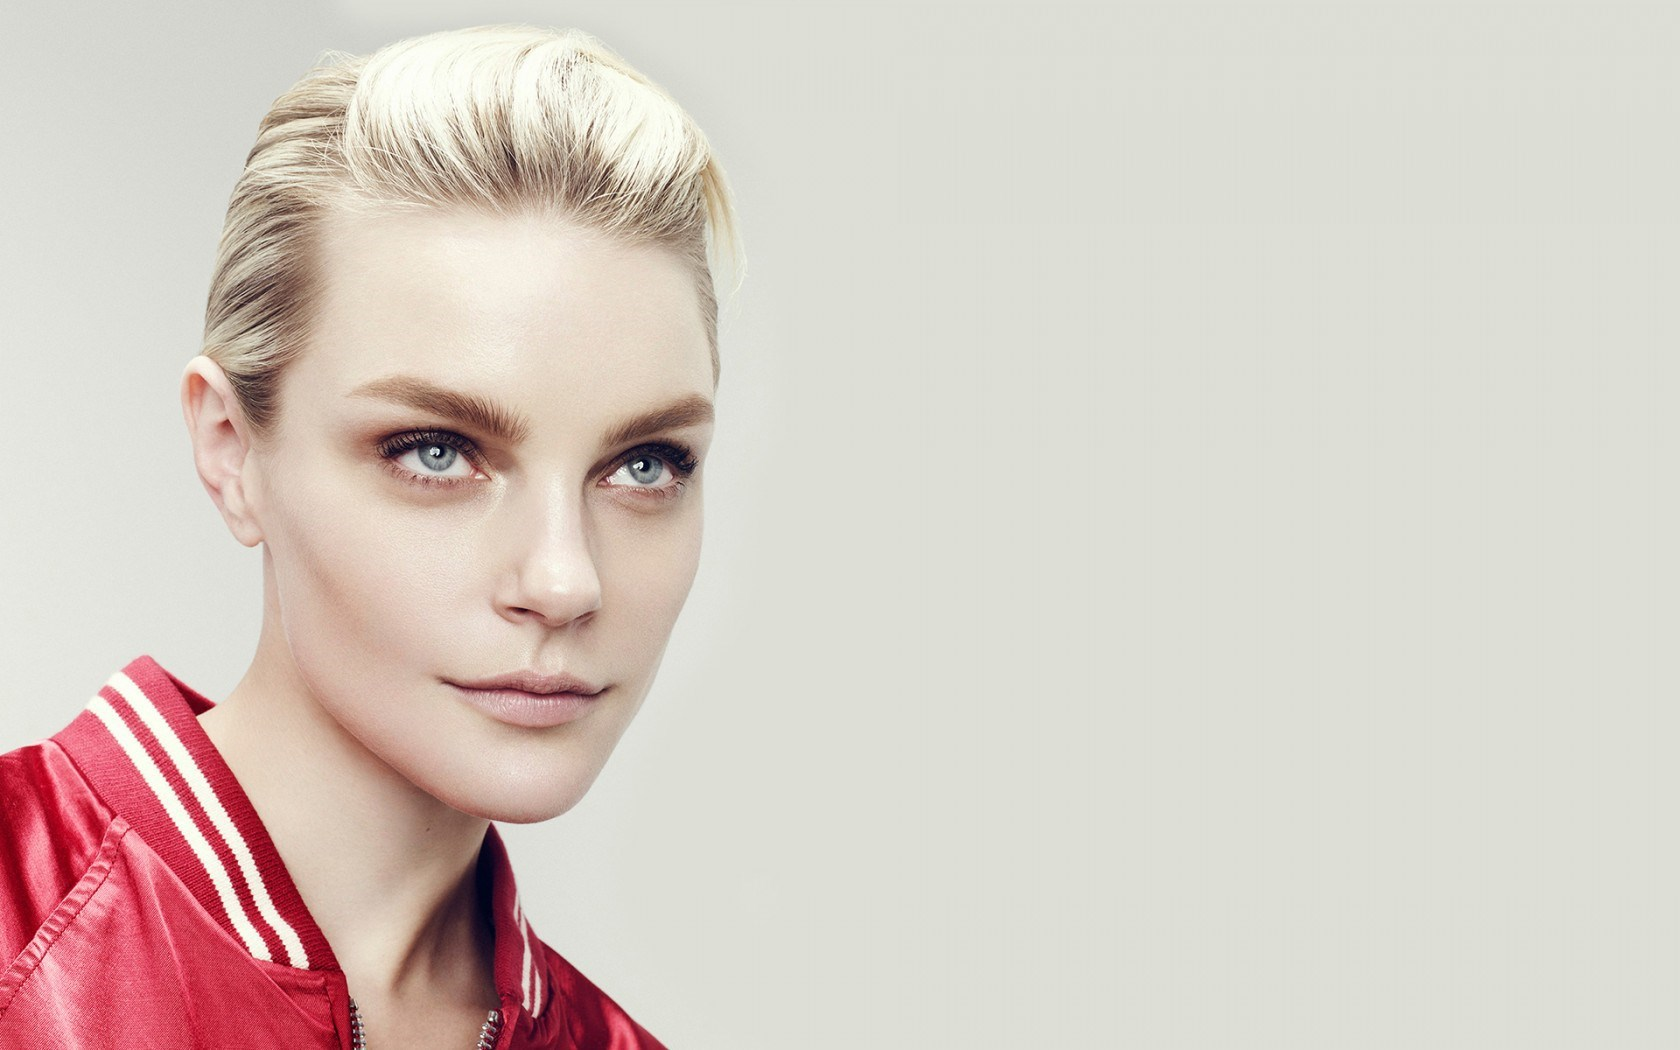 jessica stam computer hd wallpaper 60113